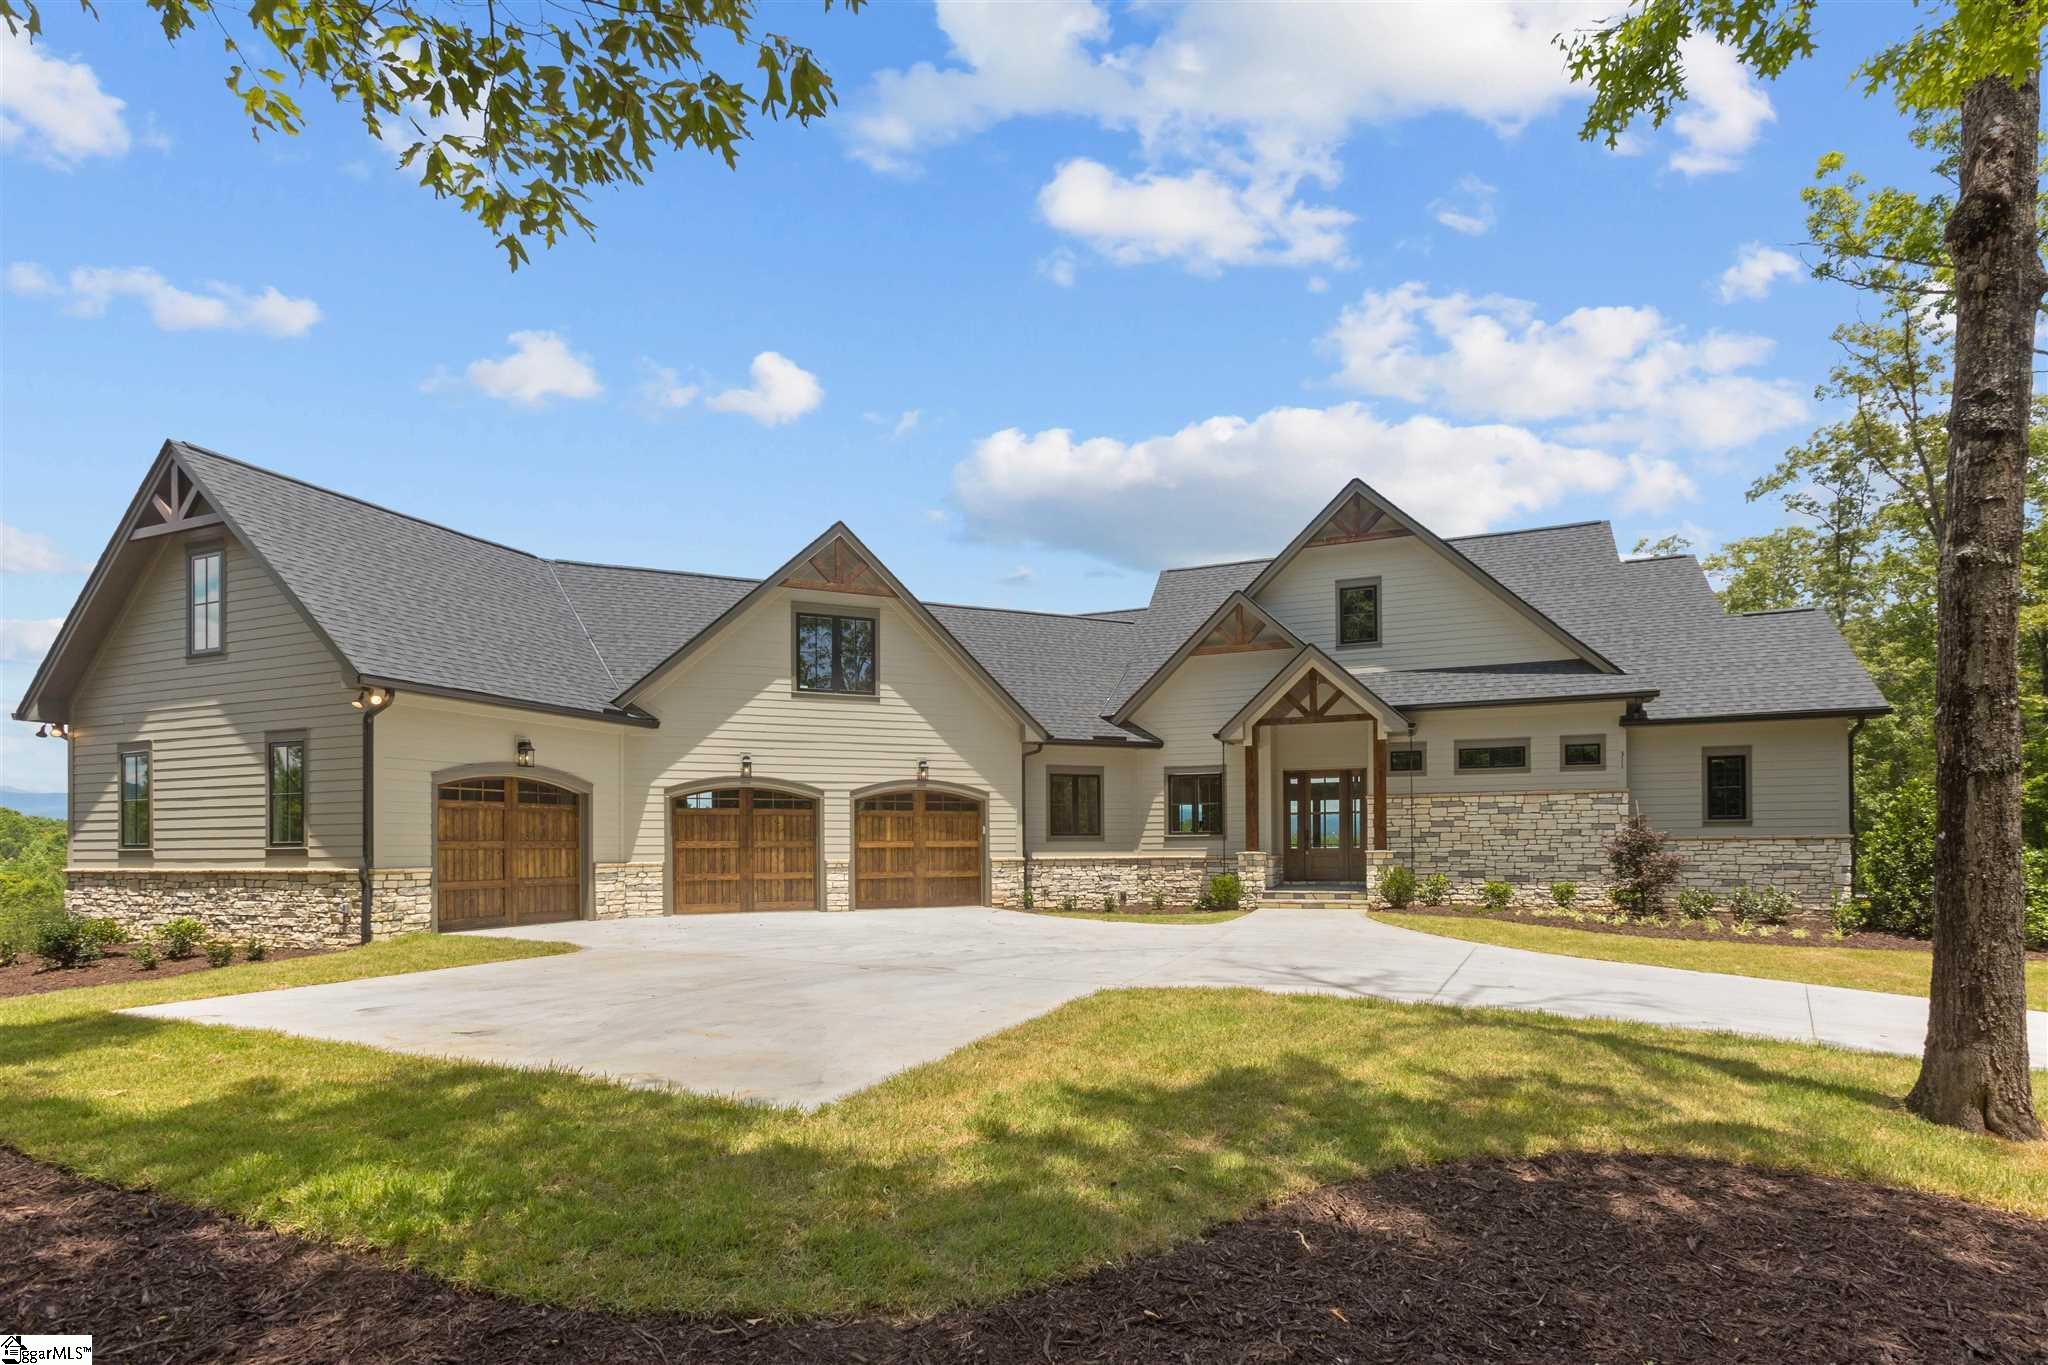 Unique opportunity to purchase beautiful, brand new custom home (just completed) with an abundance of outdoor living spaces and spectacular views of the adjoining rolling meadows with the Blue Ridge Mountains as a backdrop. Private 2.92 acre lot located at the end of a cul-de-sac with only 4 large estate-sized lots on the street. Boat slips (separate annual lease) are available within a short golf cart ride down Shimmering Water Way. Upon entering the residence, your eyes are drawn to the stunning mountain views. The great room has a 16' wide, arched window wall, a floor-to-ceiling stone fireplace flanked by custom built-in cabinets and shelves, and finished wood beams compliment the vaulted ceiling. The kitchen is a cook's dream with large center island, Taj Mahal quartzite slab countertops, top-of-the line appliances (Wolf, Sub-Zero, Miele) and fixtures. This kitchen is both a workable food preparation area as well as an entertainment and conversational hub. The passage hall from kitchen to the garage (Soho brick floors) provides access to a large laundry room (custom cabinets, soapstone slab counters and farmers sink), pantry with finished shelving and the powder room. The kitchen and dining room also provide wonderful mountain vistas. The dining room is the perfect size for those holiday get-togethers. The spacious, open floor plan allows easy communication flow between living room, kitchen and dining areas - perfect for family, friends and guests. 8' tall sliding glass doors provide a seamless transition from the dining room into a 26' x 14' all-season room with floor-to-ceiling stone fireplace to enjoy those cool fall/winter evenings. This is only one of the four covered, outdoor living areas (two on main level, two on lower level) that take full advantage of this one-of-a-kind setting. The generous master bedroom offers majestic mountain views, a coffered ceiling and an ensuite bath with large travertine marble shower, separate his-and-her vanities and separa